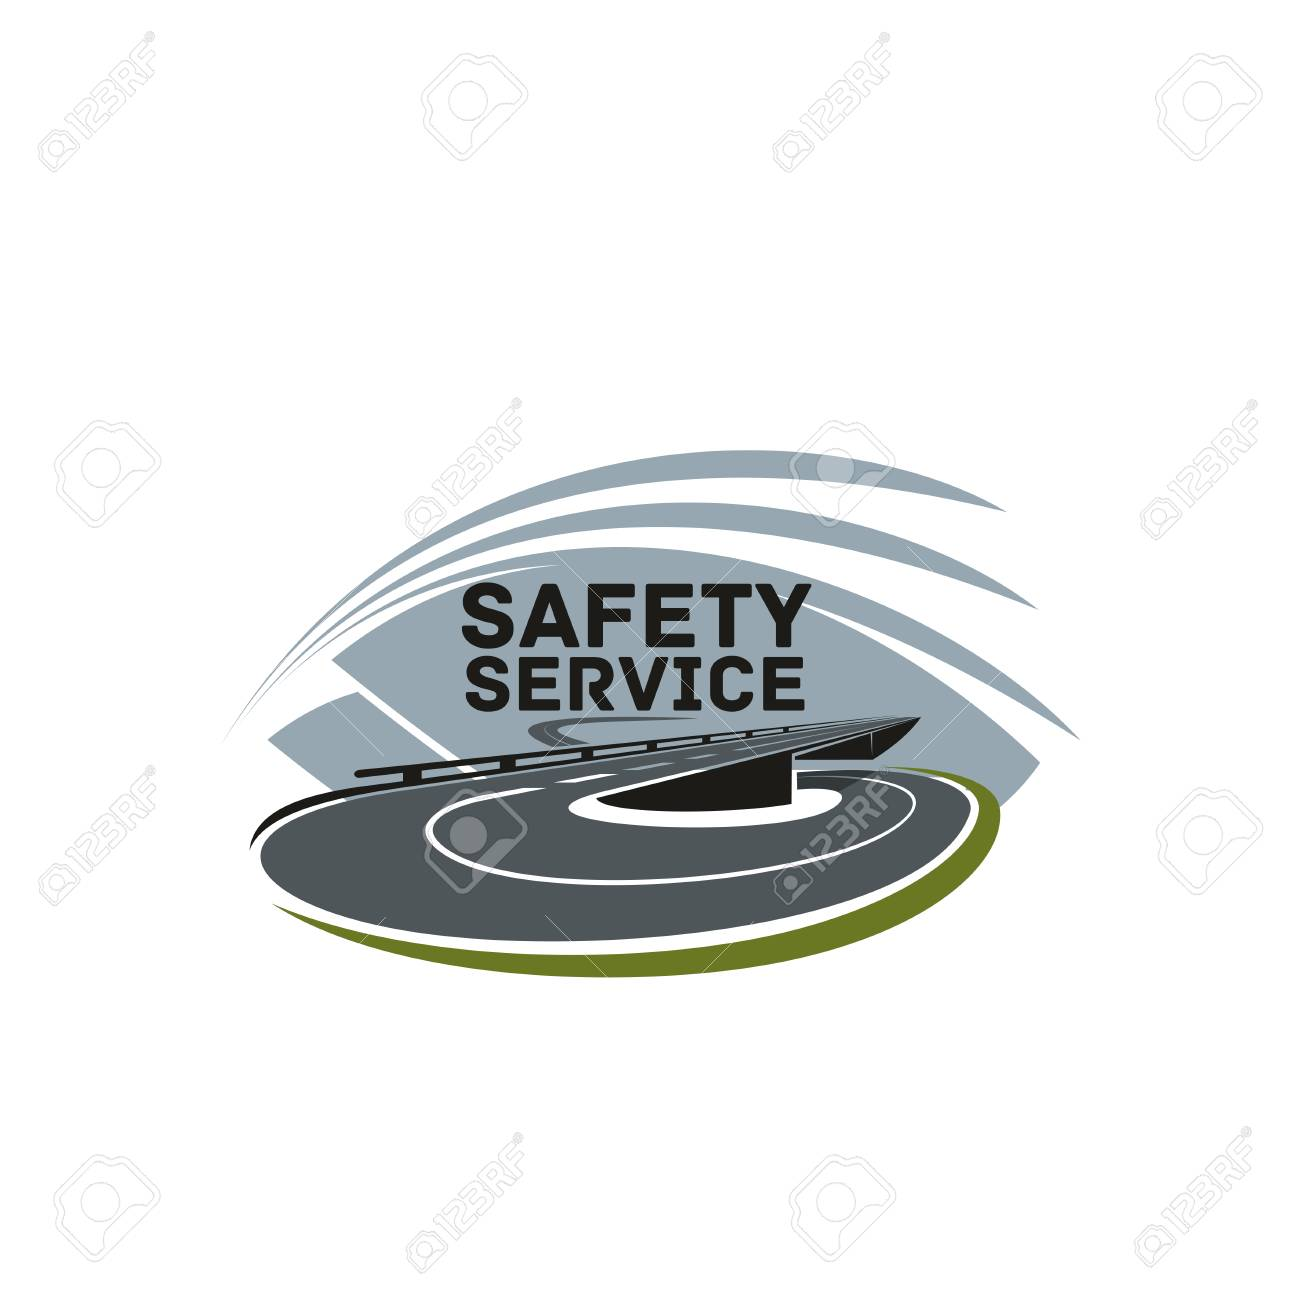 Road Safety Or Highway Construction Company Icon Design Template